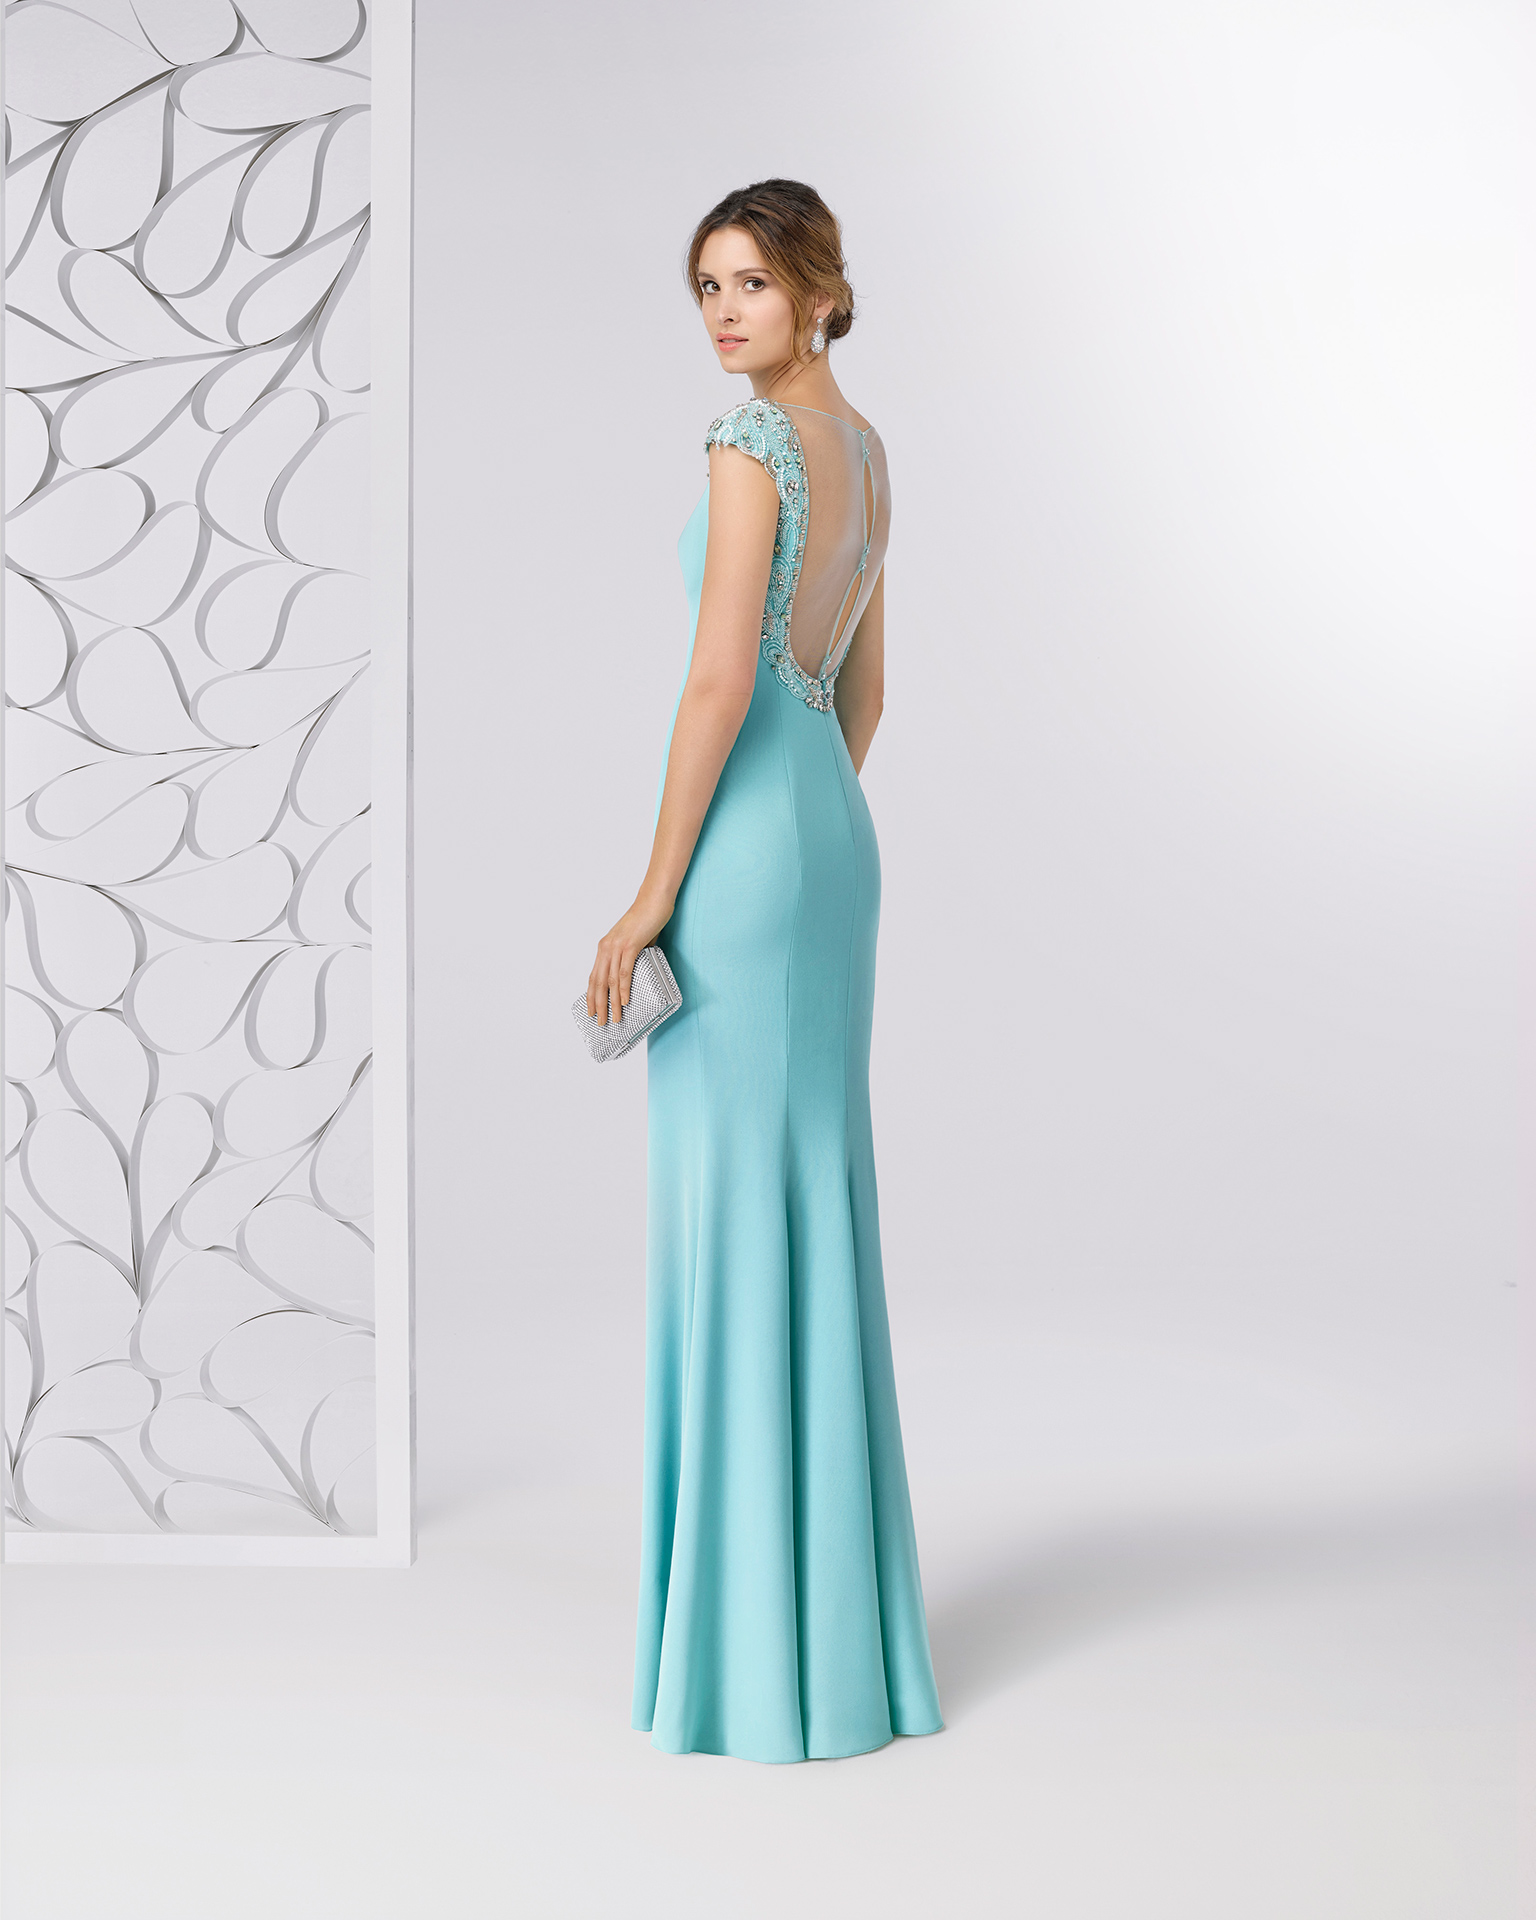 Crepe cocktail dress with bateau neckline and beaded open back. Available in cobalt, red, green and navy blue. 2018 FIESTA AIRE BARCELONA Collection.